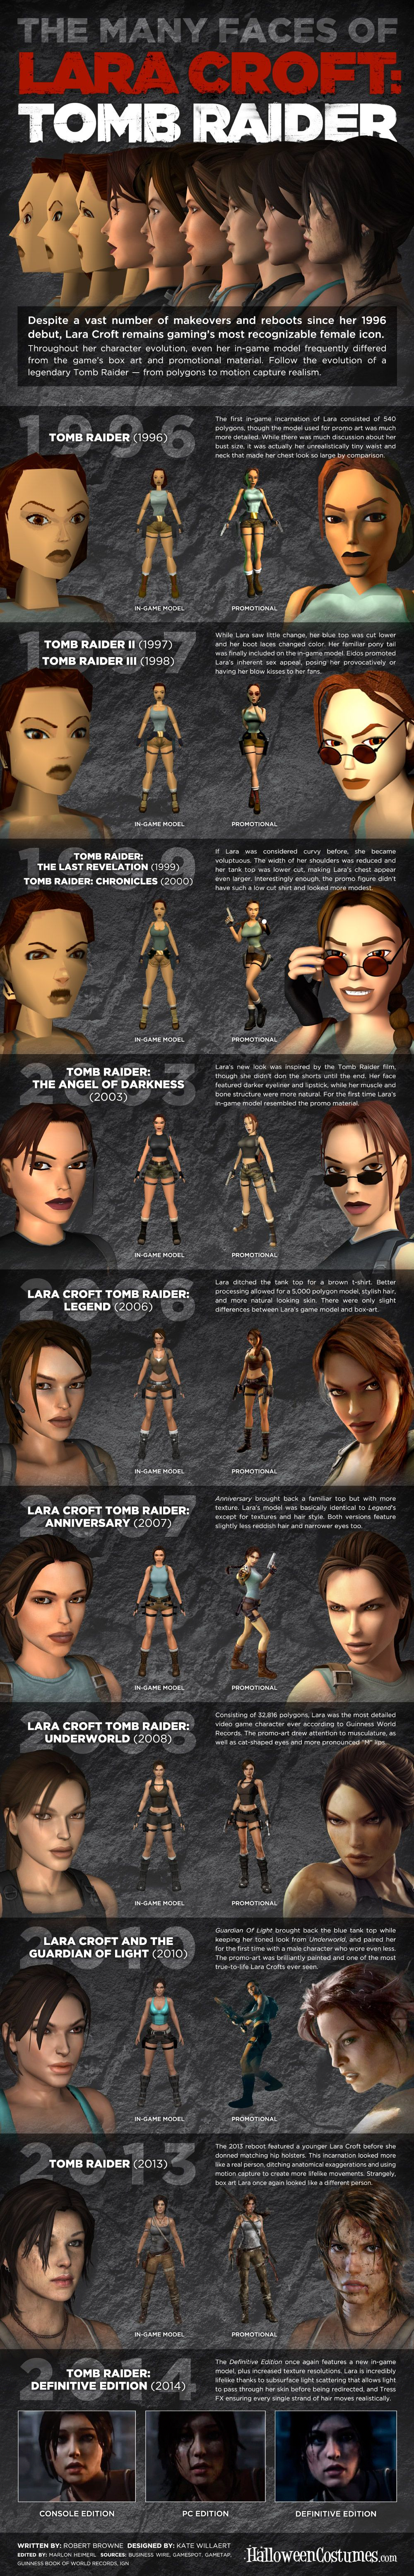 The Many Faces Of Lara Croft Tomb Raider Infographic Tomb